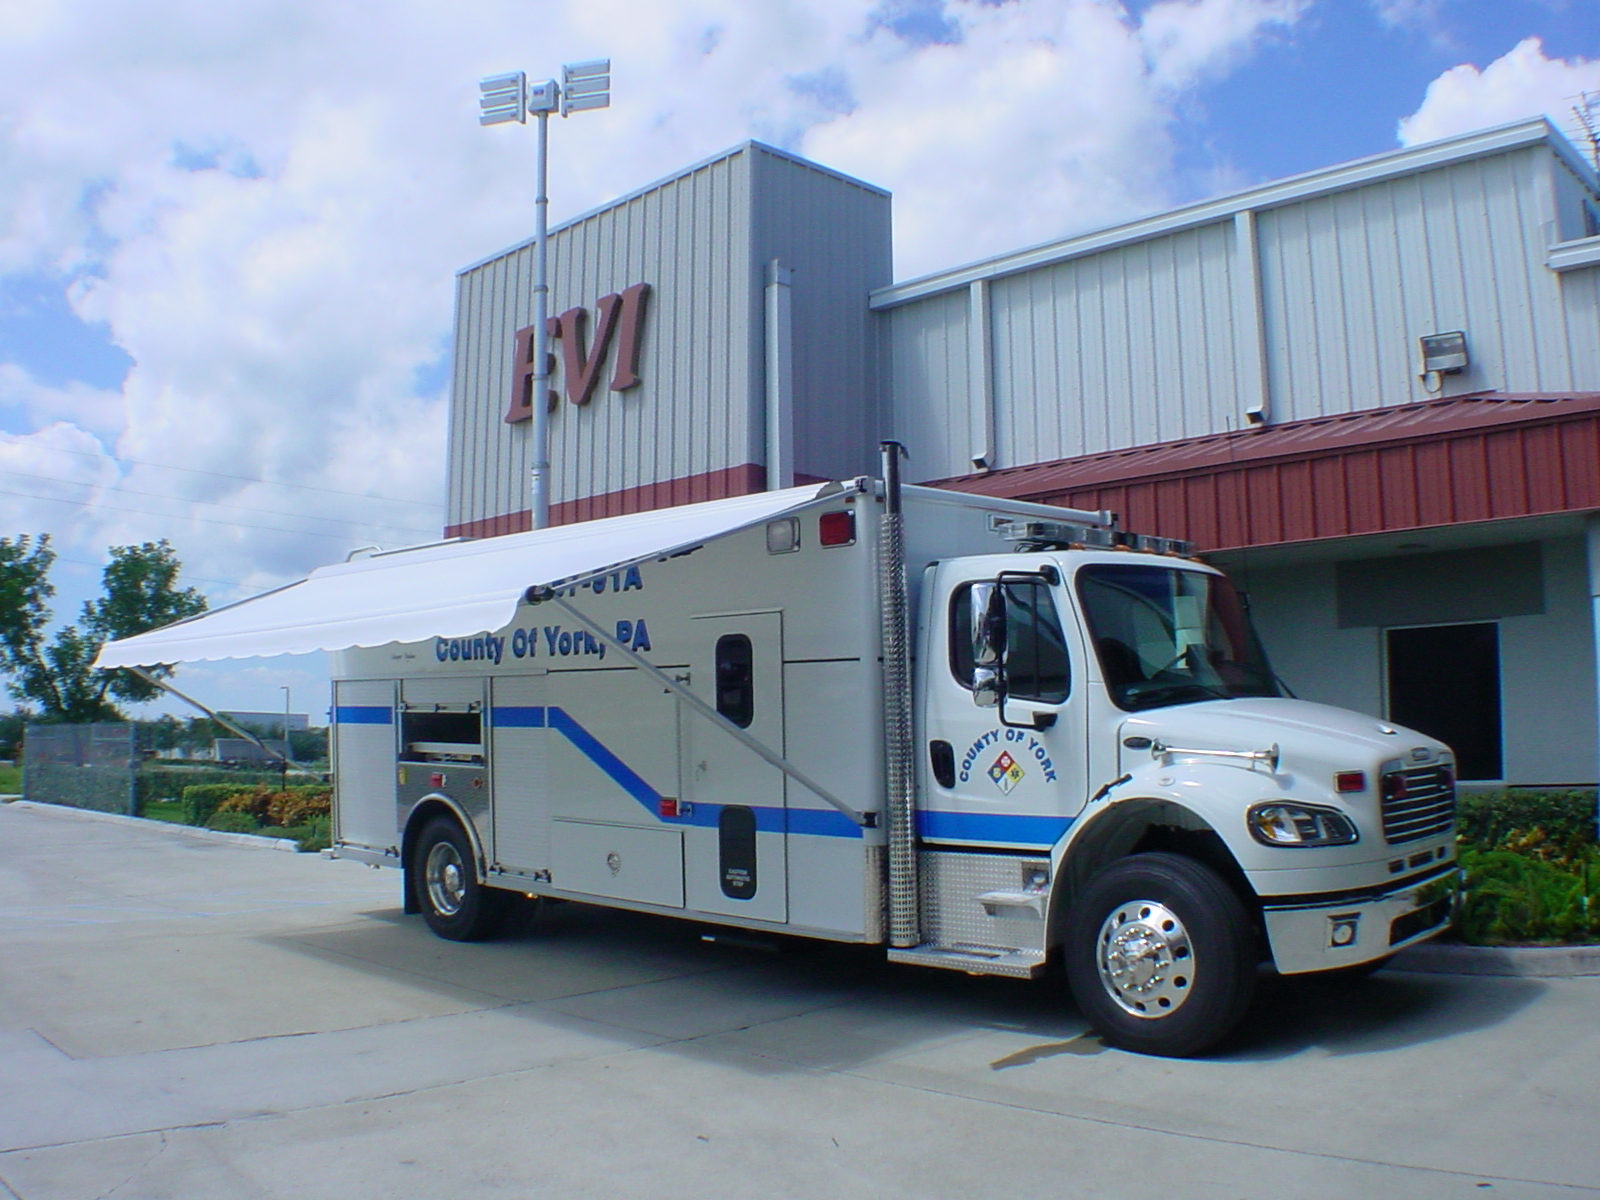 EVI 22-Ft. Crew Body Rescue Truck